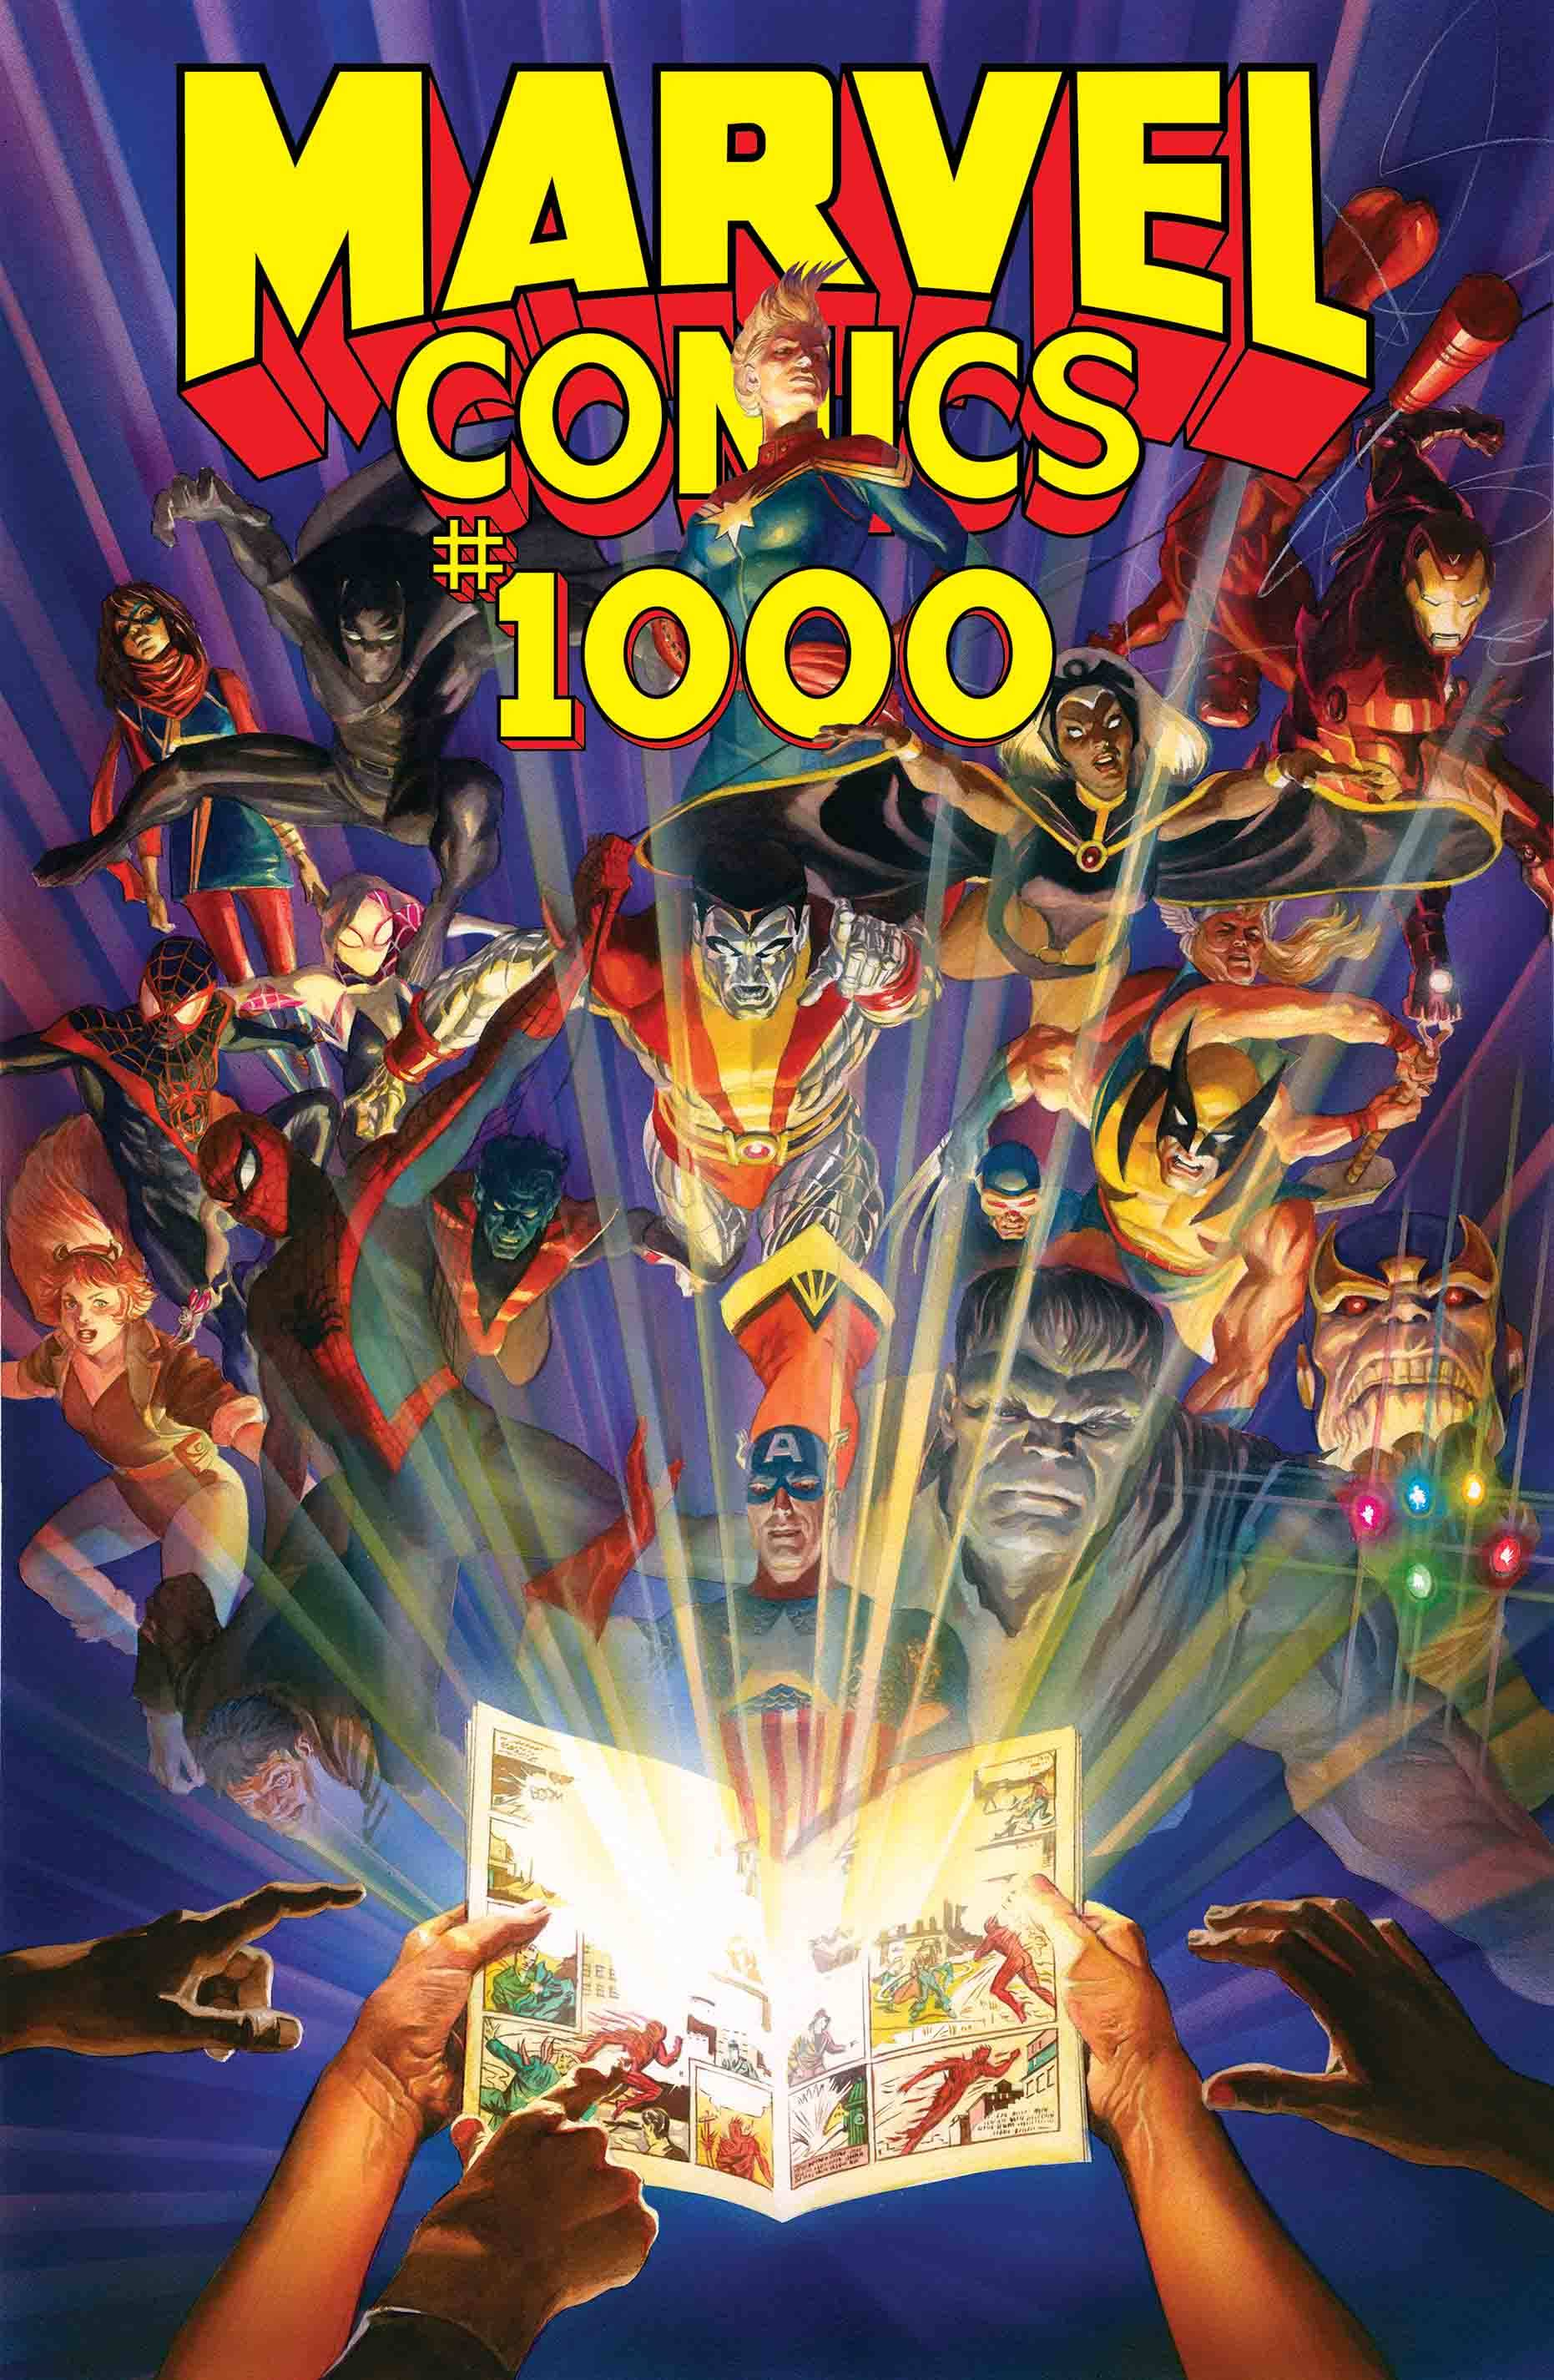 MARVEL COMICS 1000 BY ALEX ROSS POSTER.jpg